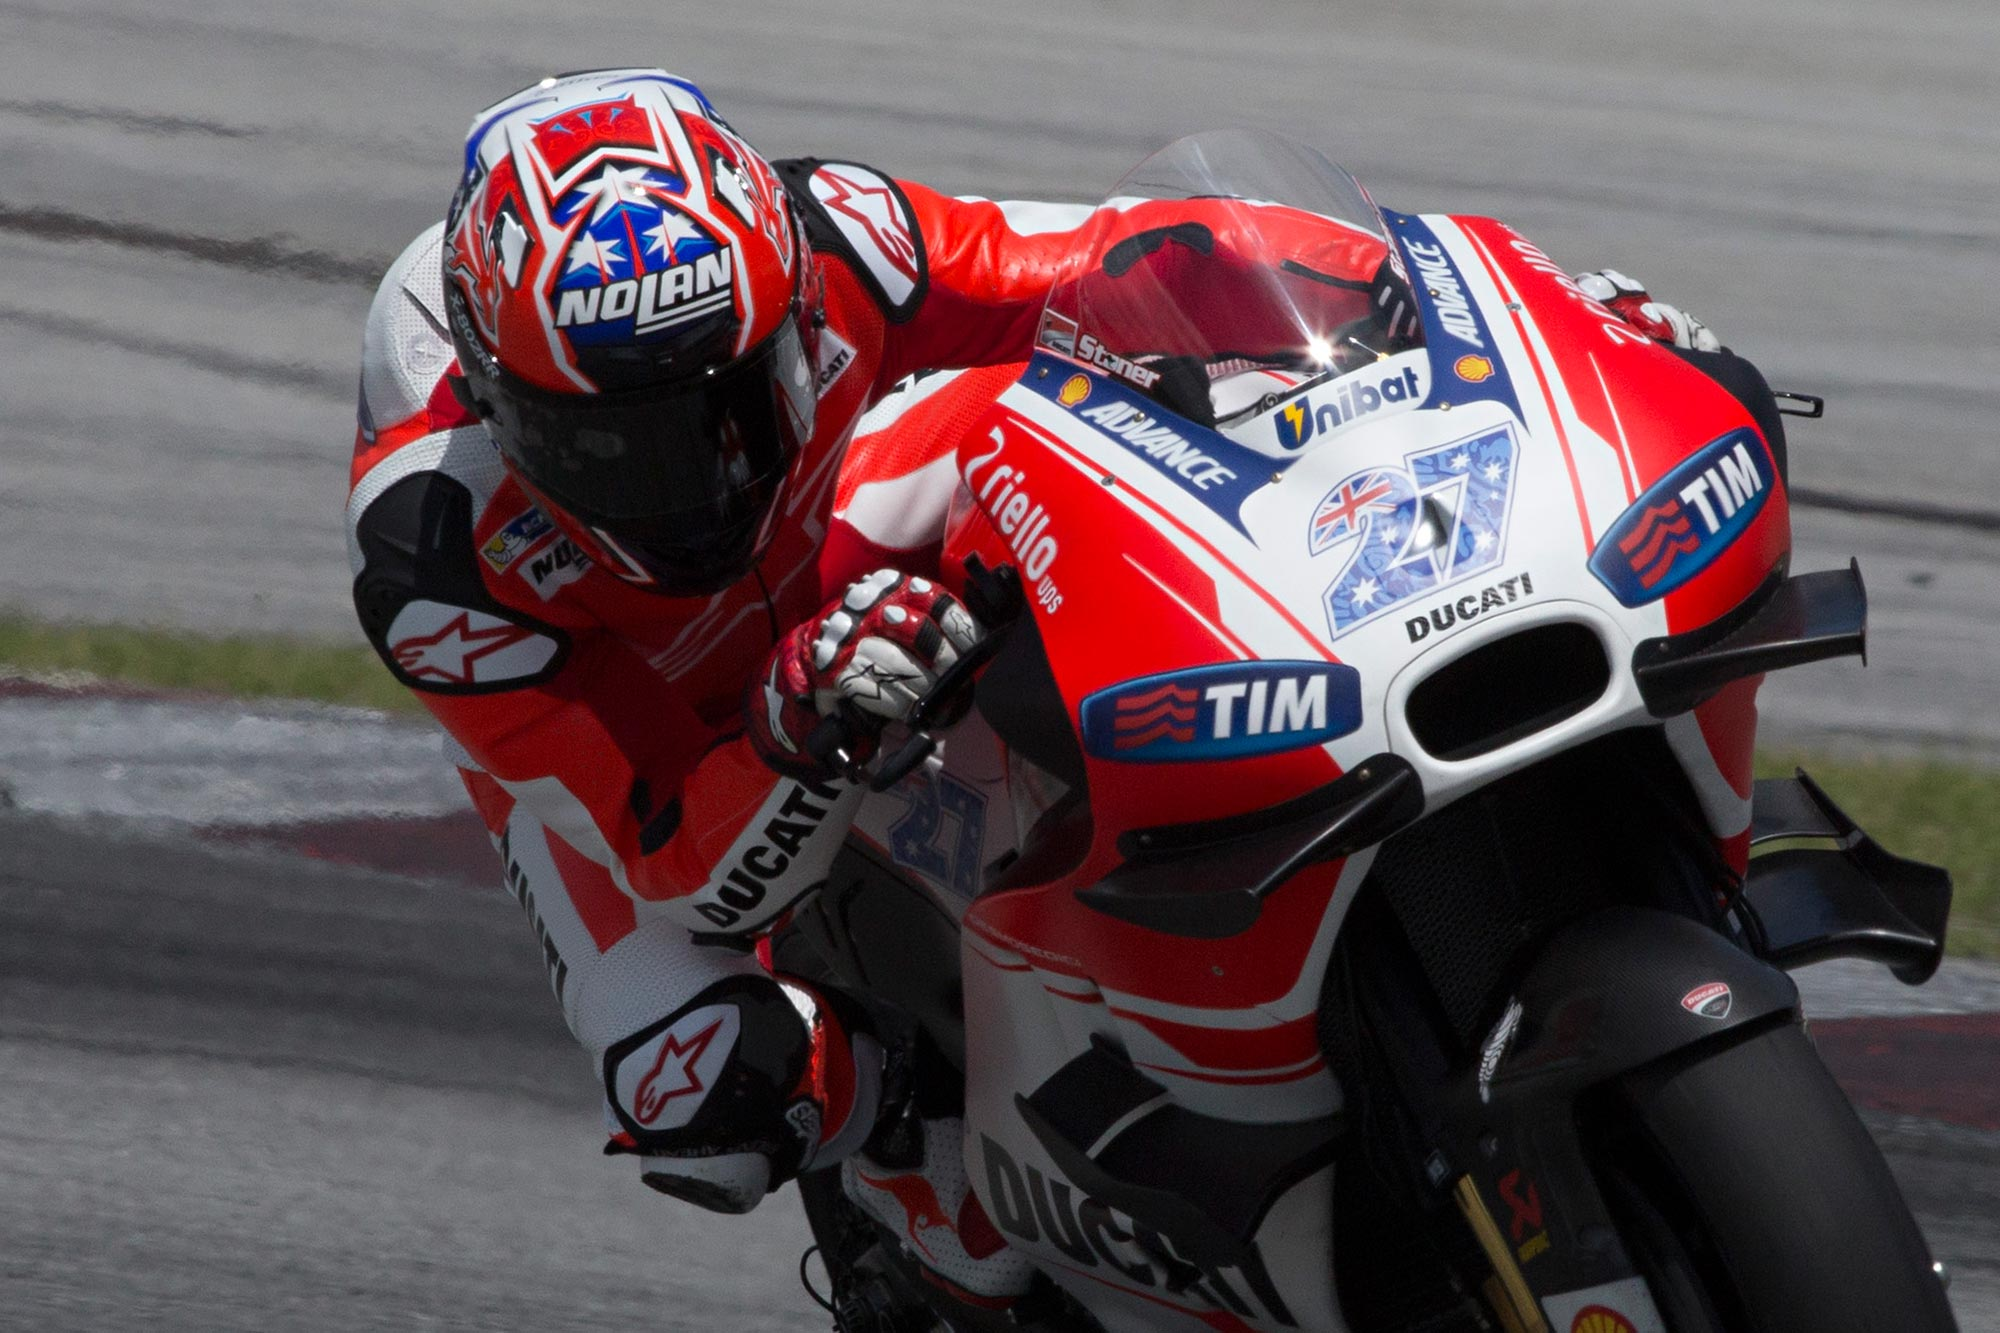 Your Questions Answered on Casey Stoner's MotoGP Return